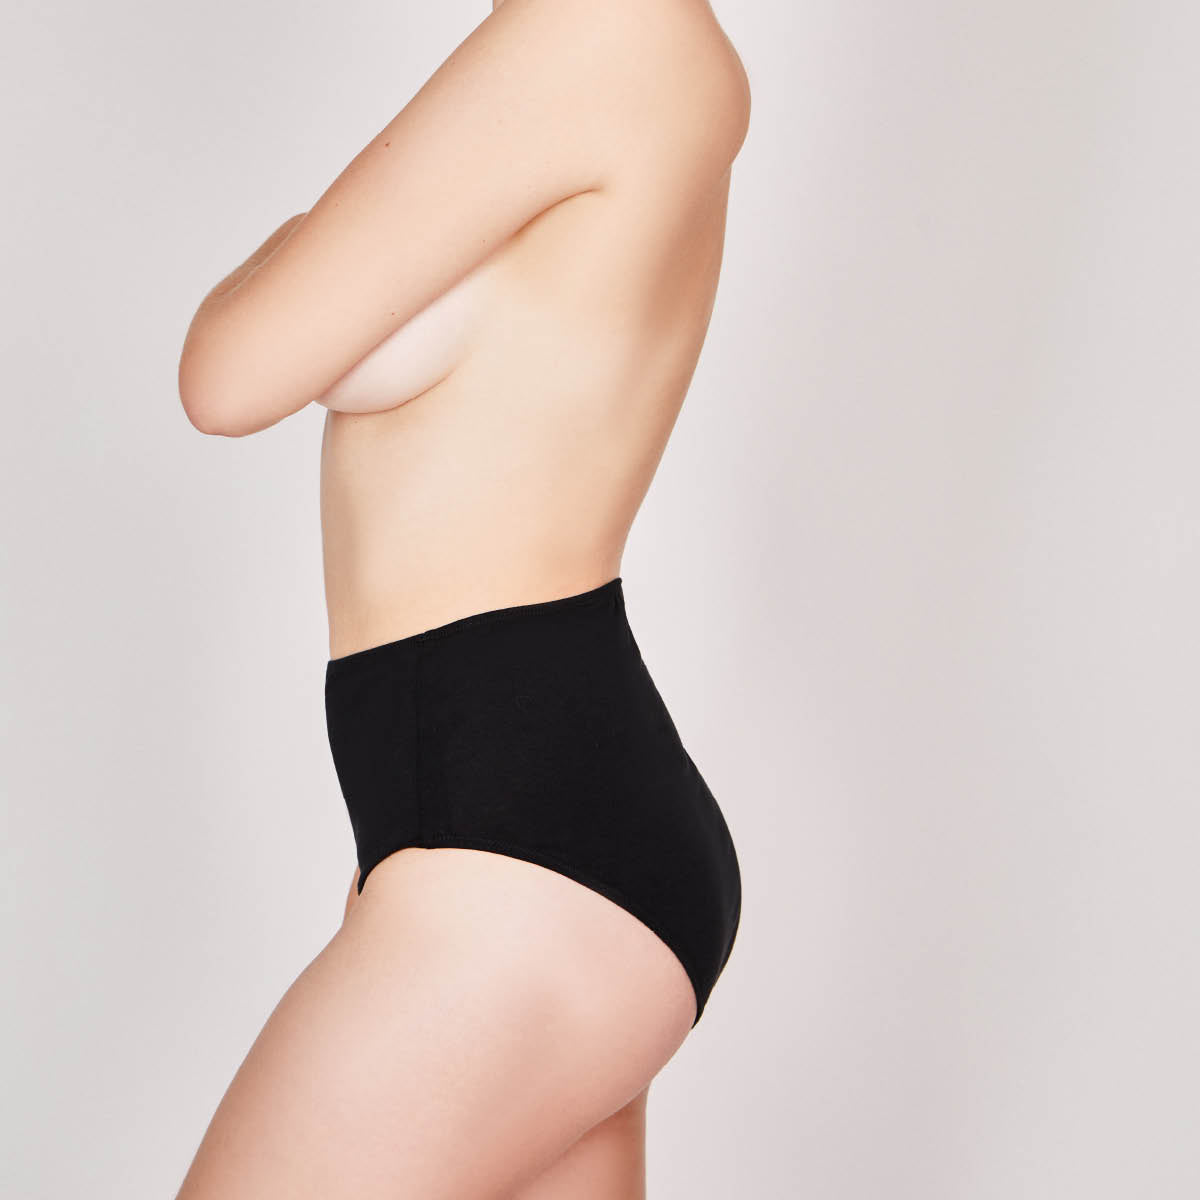 woman wearing high waisted black cotton underwear